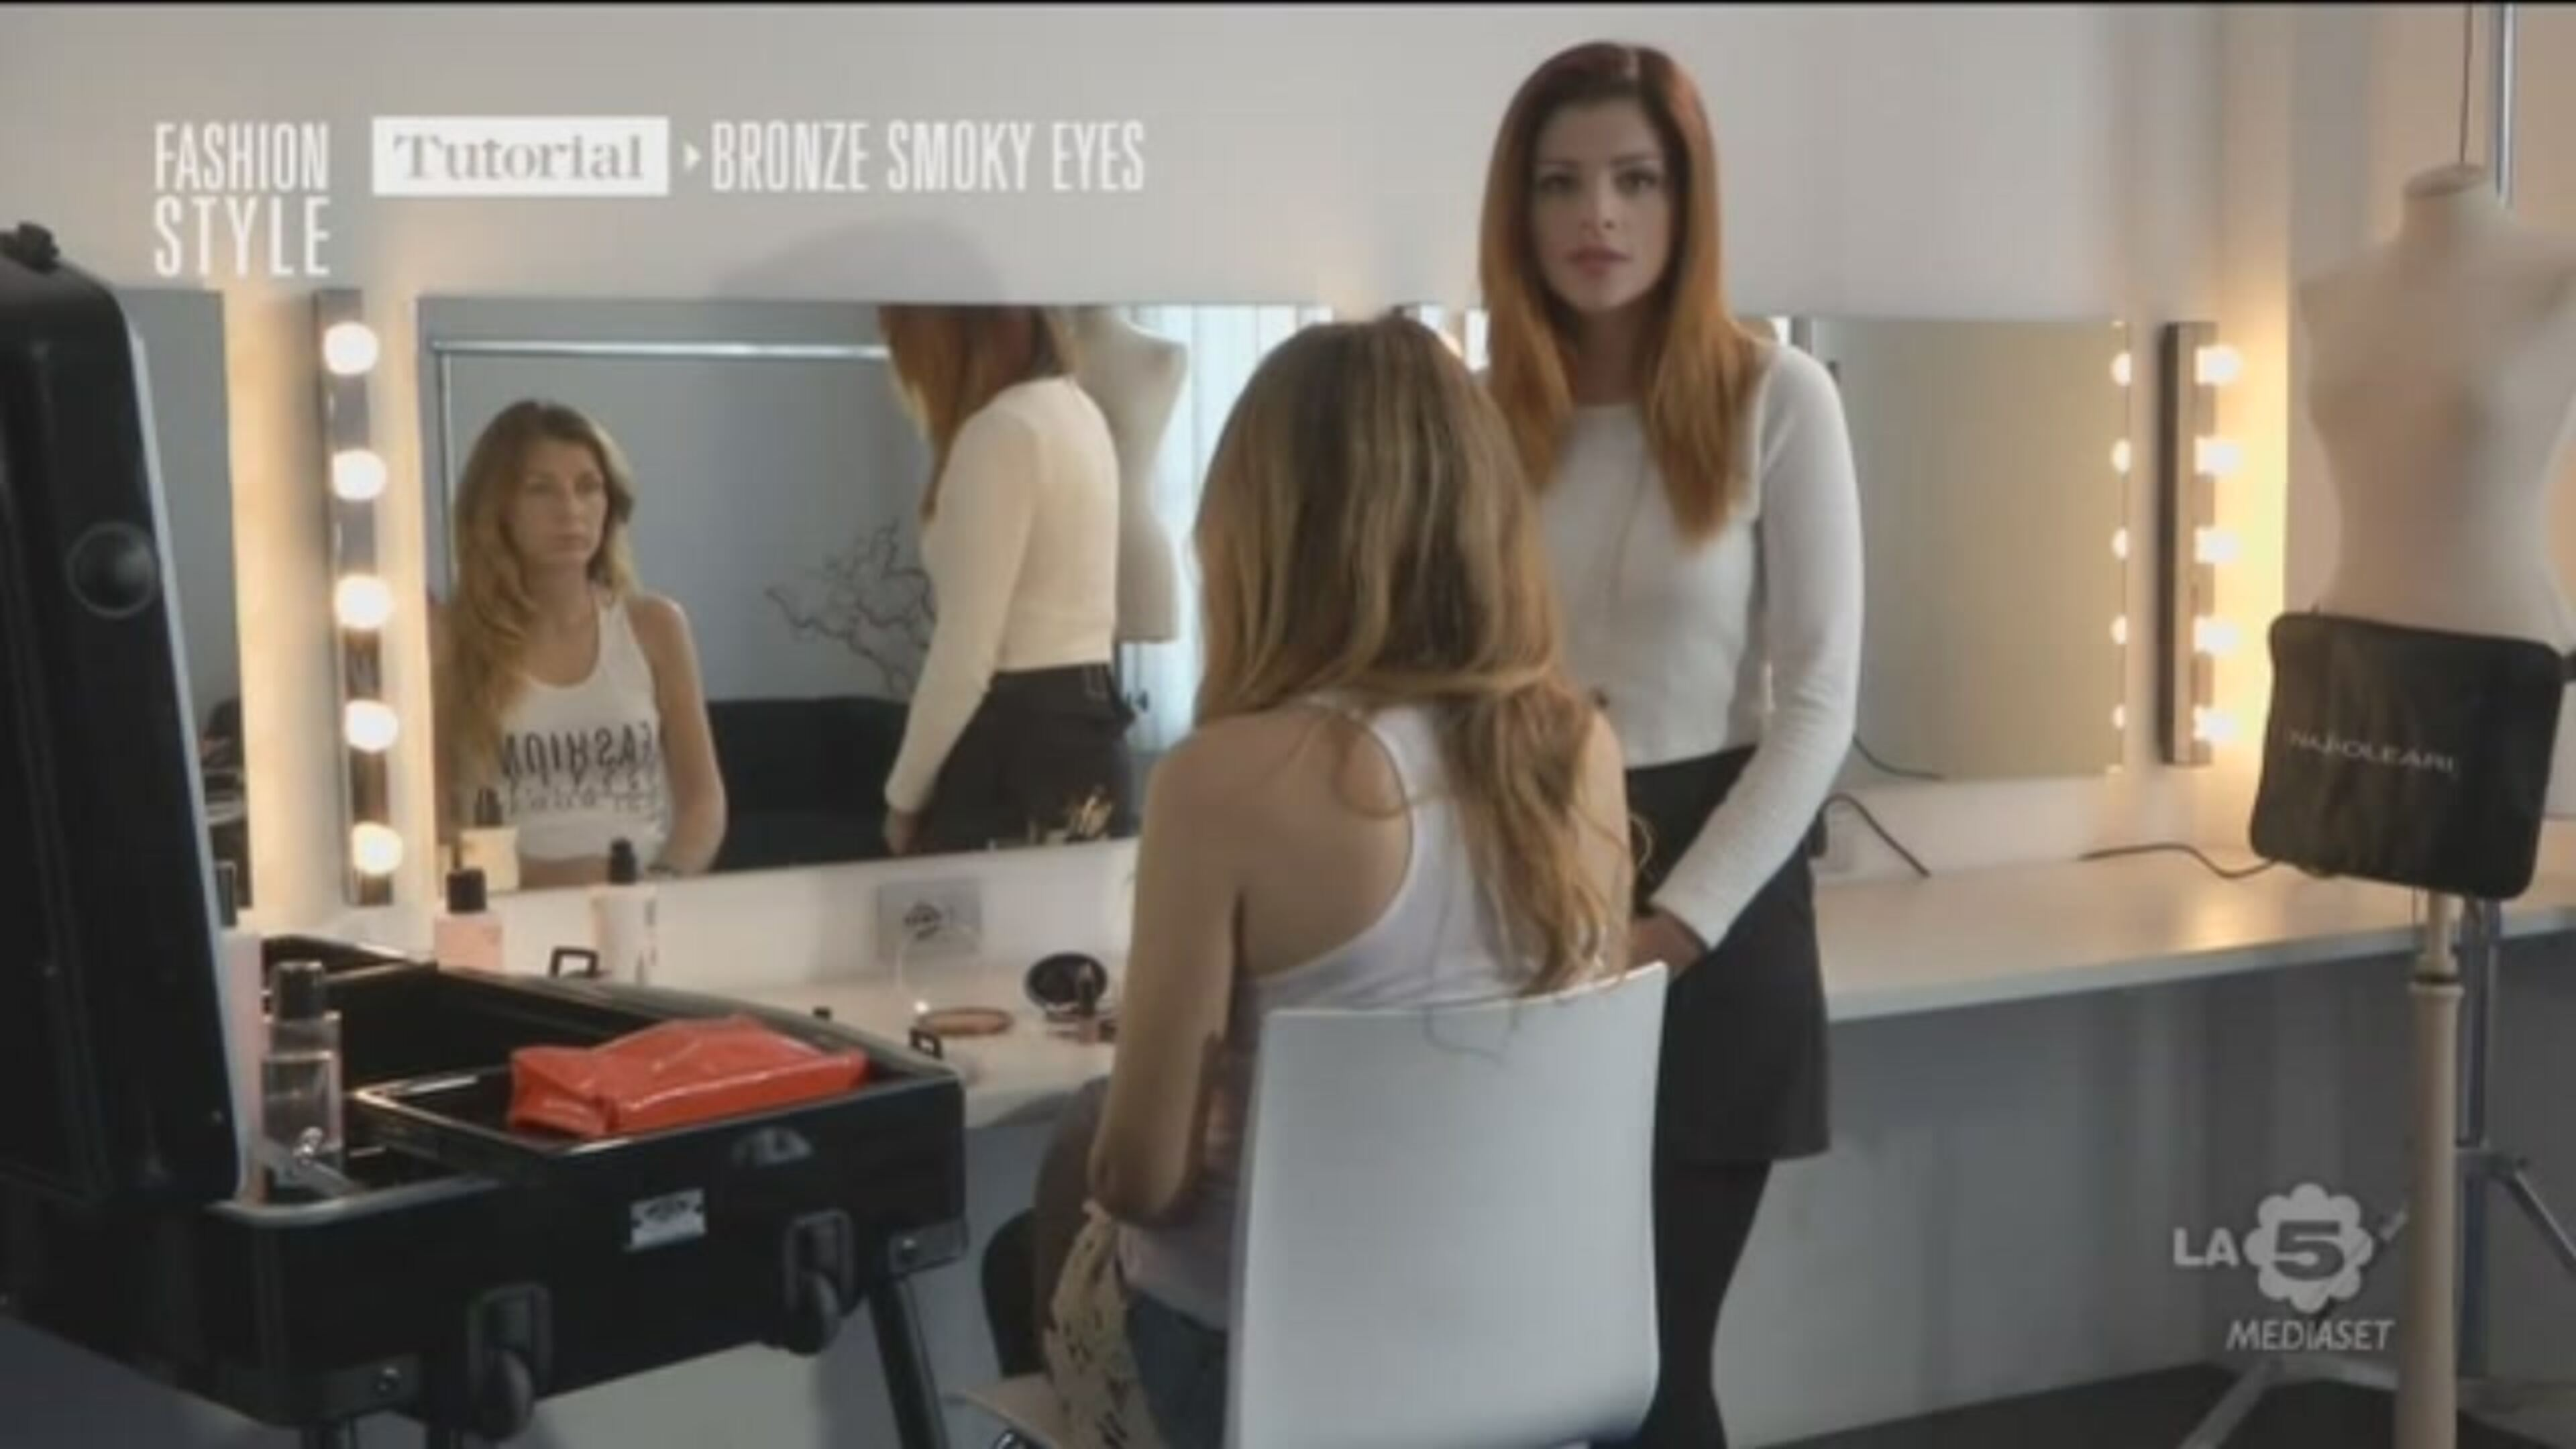 Video Fashion Style Bronze Smoky Eyes Tutorial Mediaset On Demand